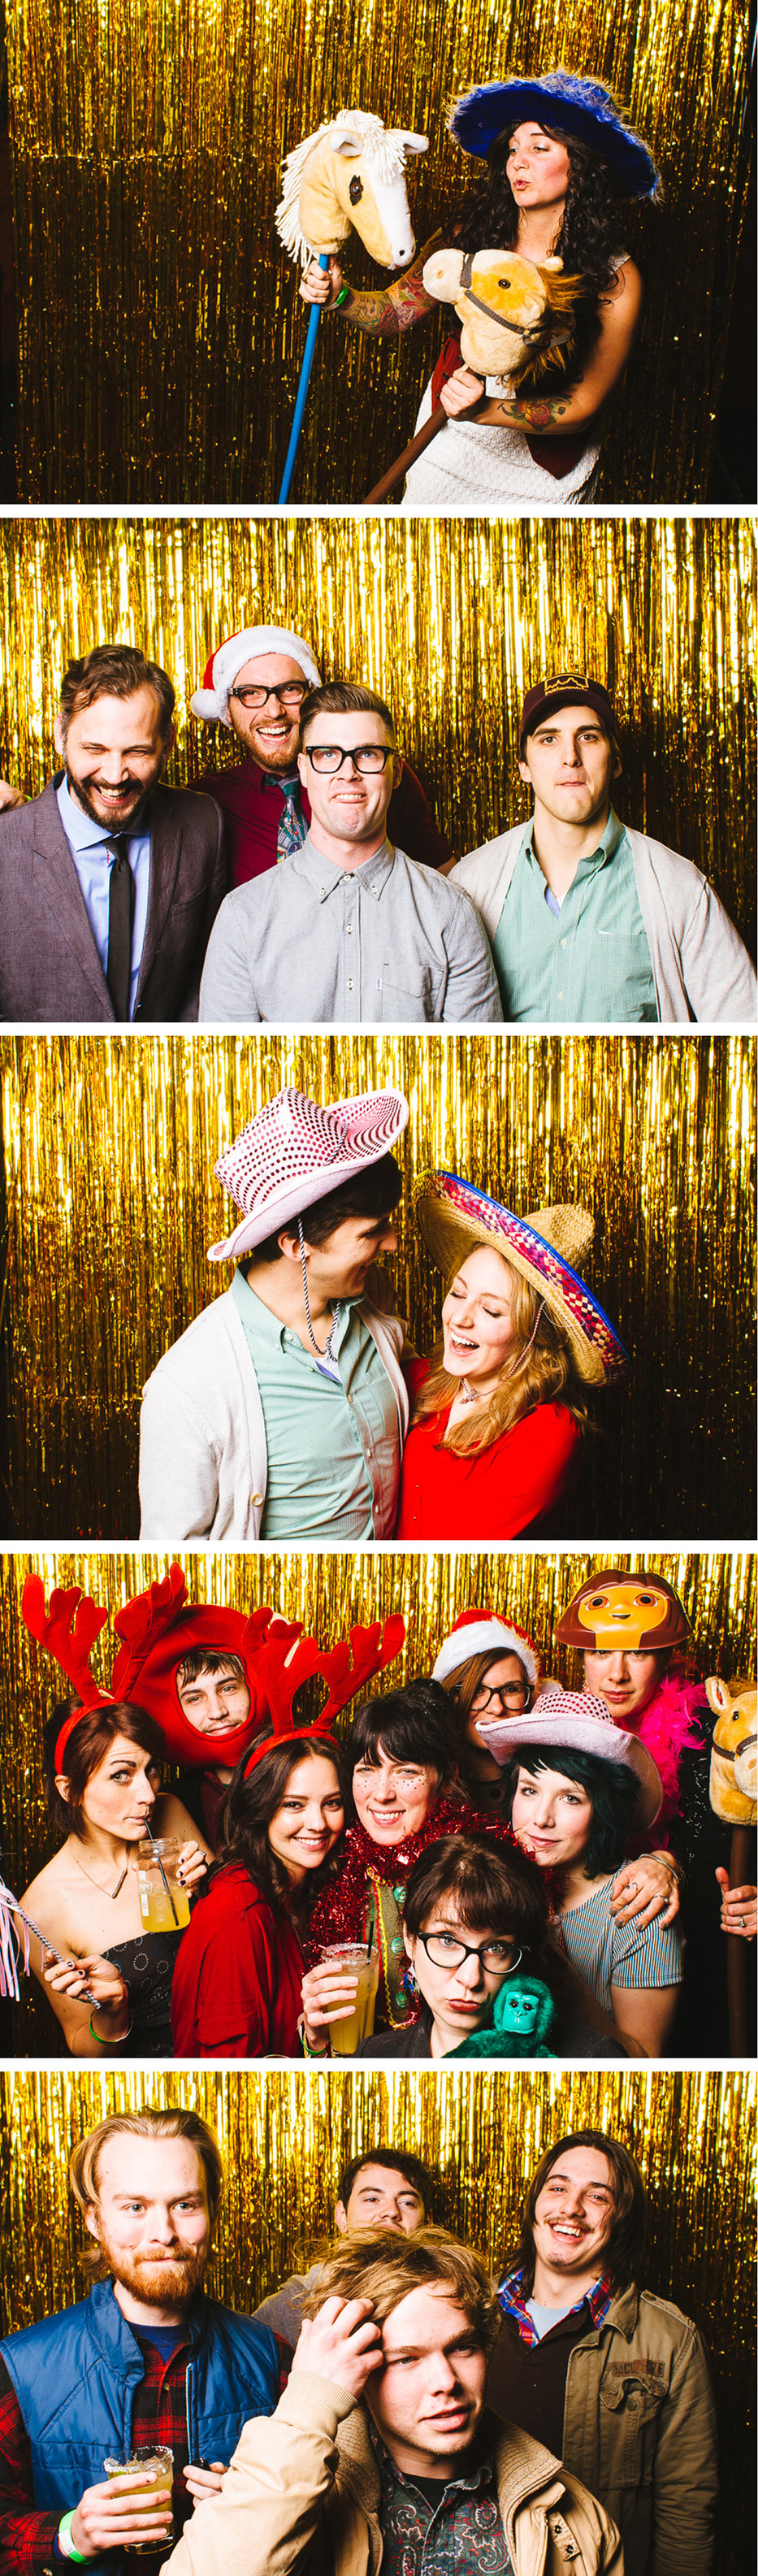 CK-Photo-Nashville-Photobooth-B2.jpg